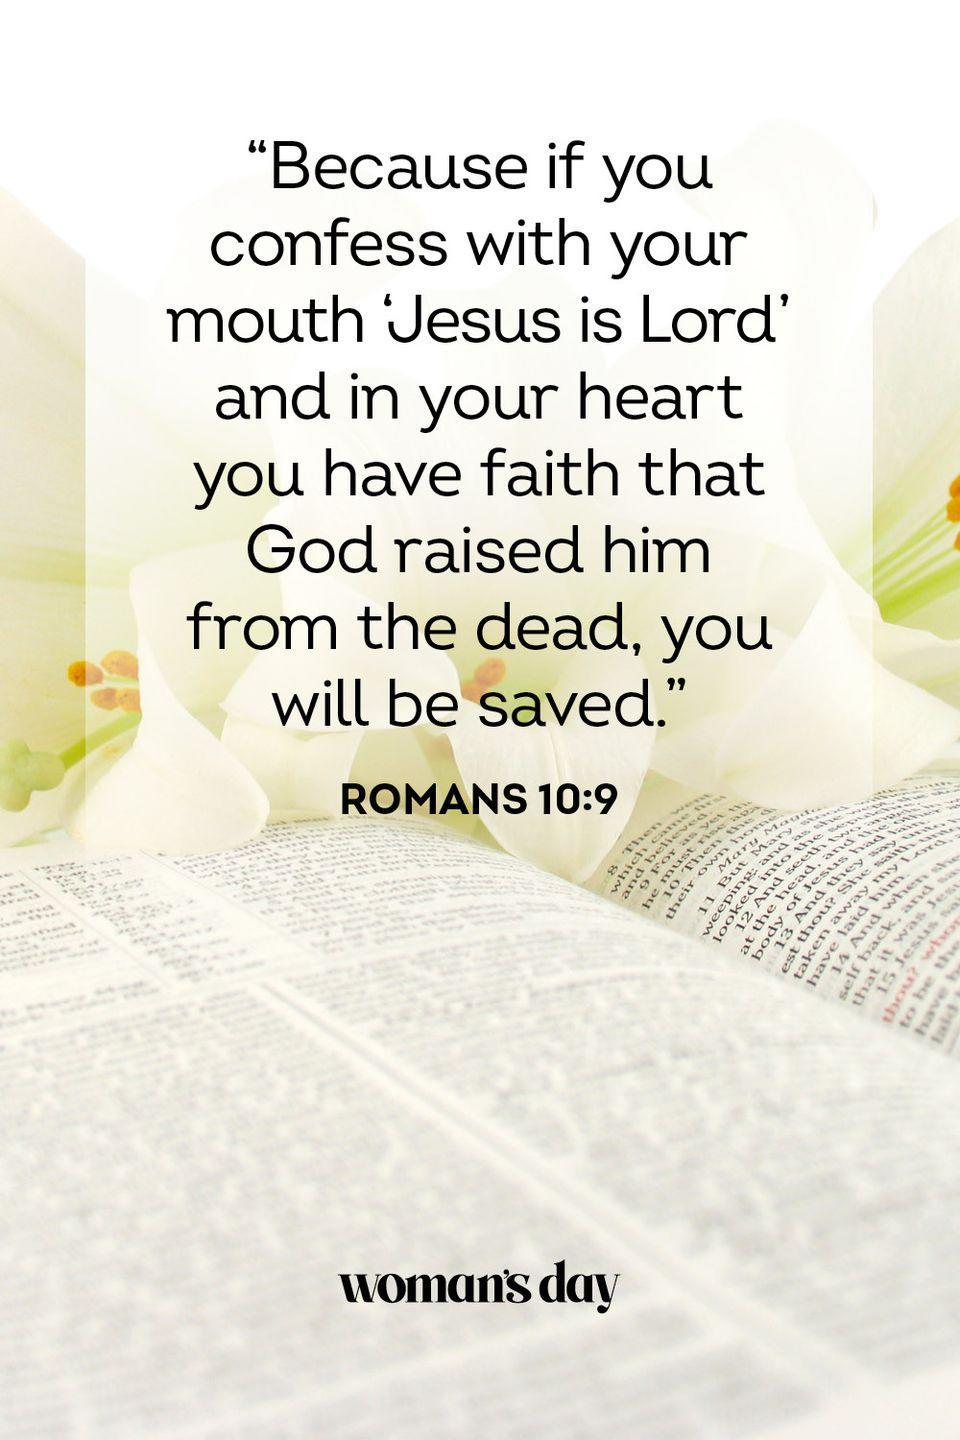 "<p>""Because if you confess with your mouth 'Jesus is Lord' and in your heart you have faith that God raised him from the dead, you will be saved."" — Romans 10:9</p>"